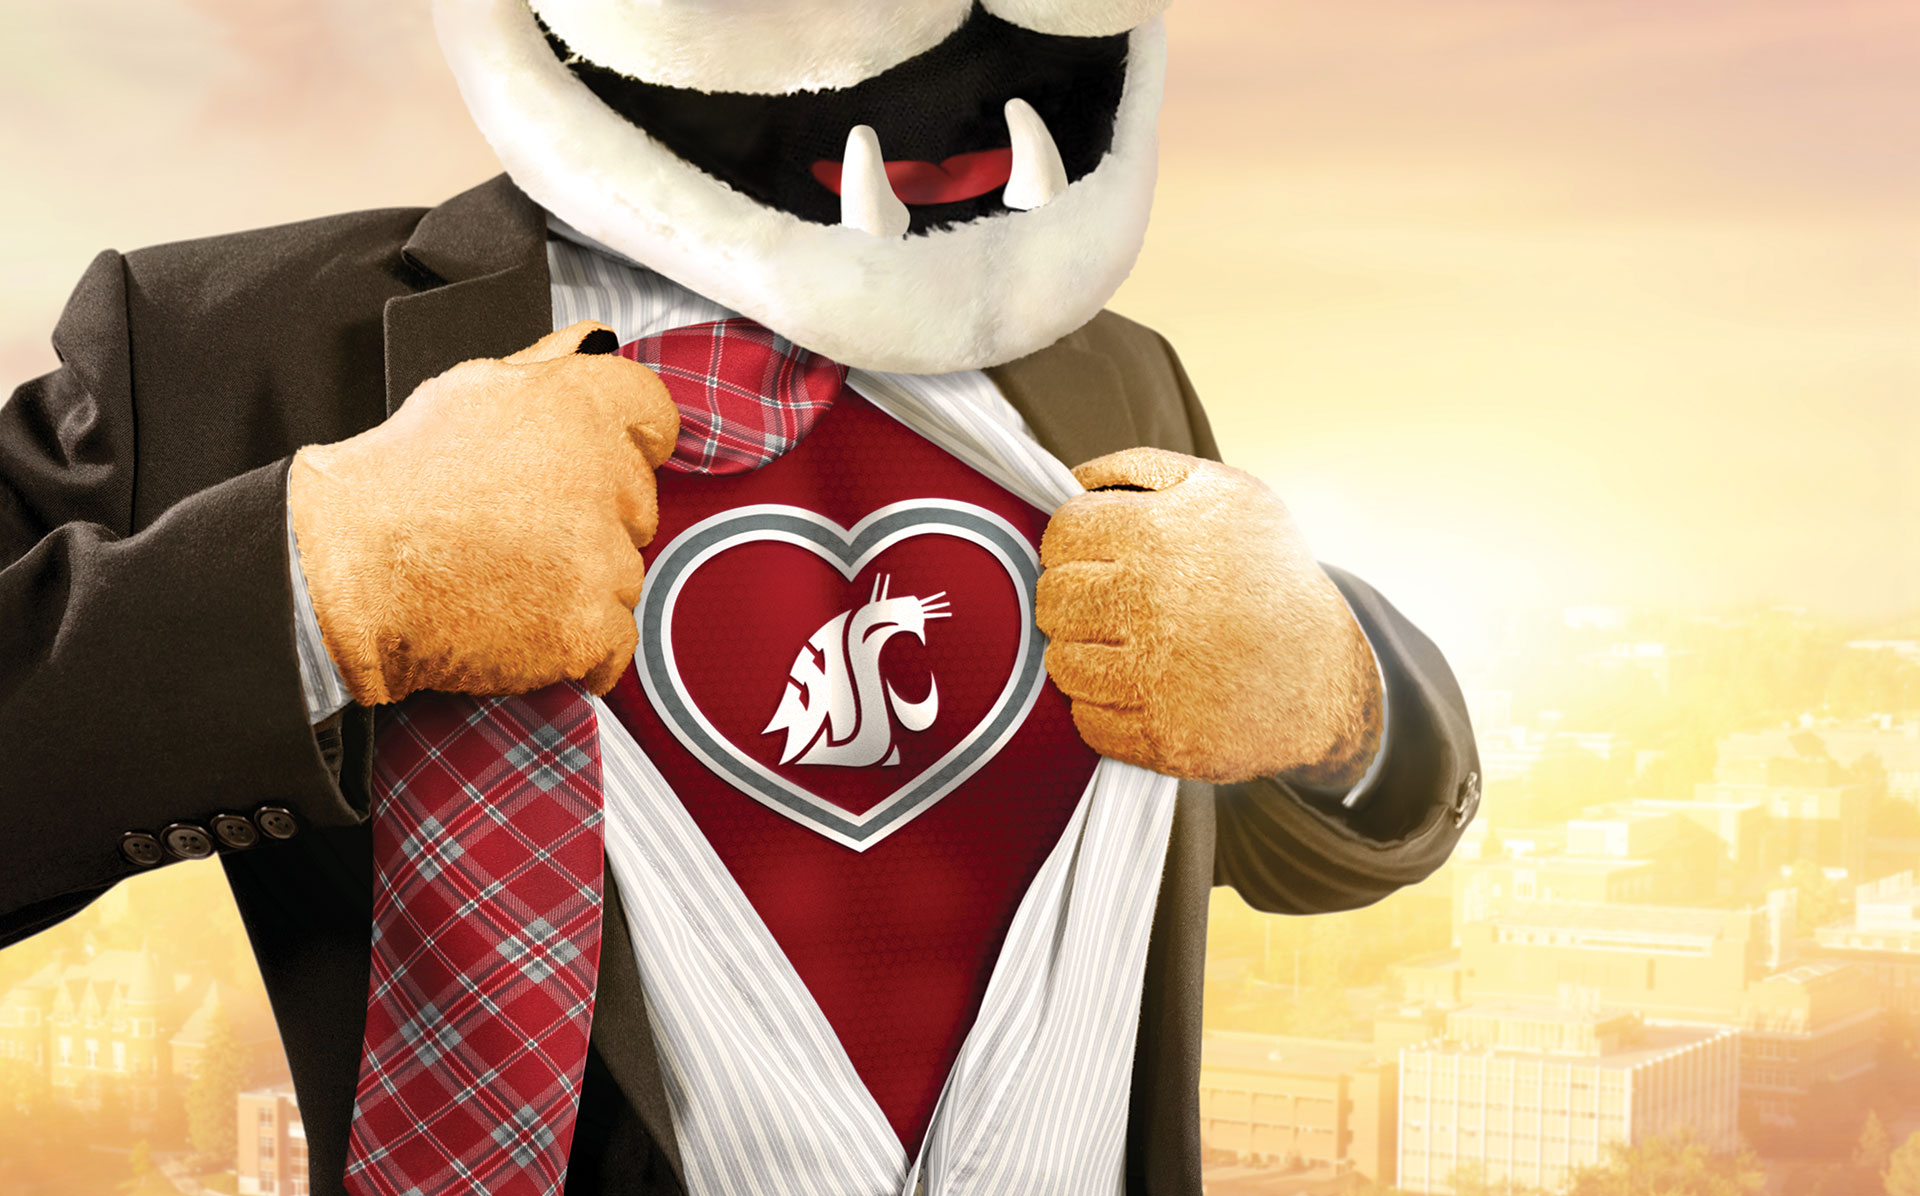 Butch T. Cougar opening his suit like superman revealing a crimson shirt and the WSU logo within a heart.